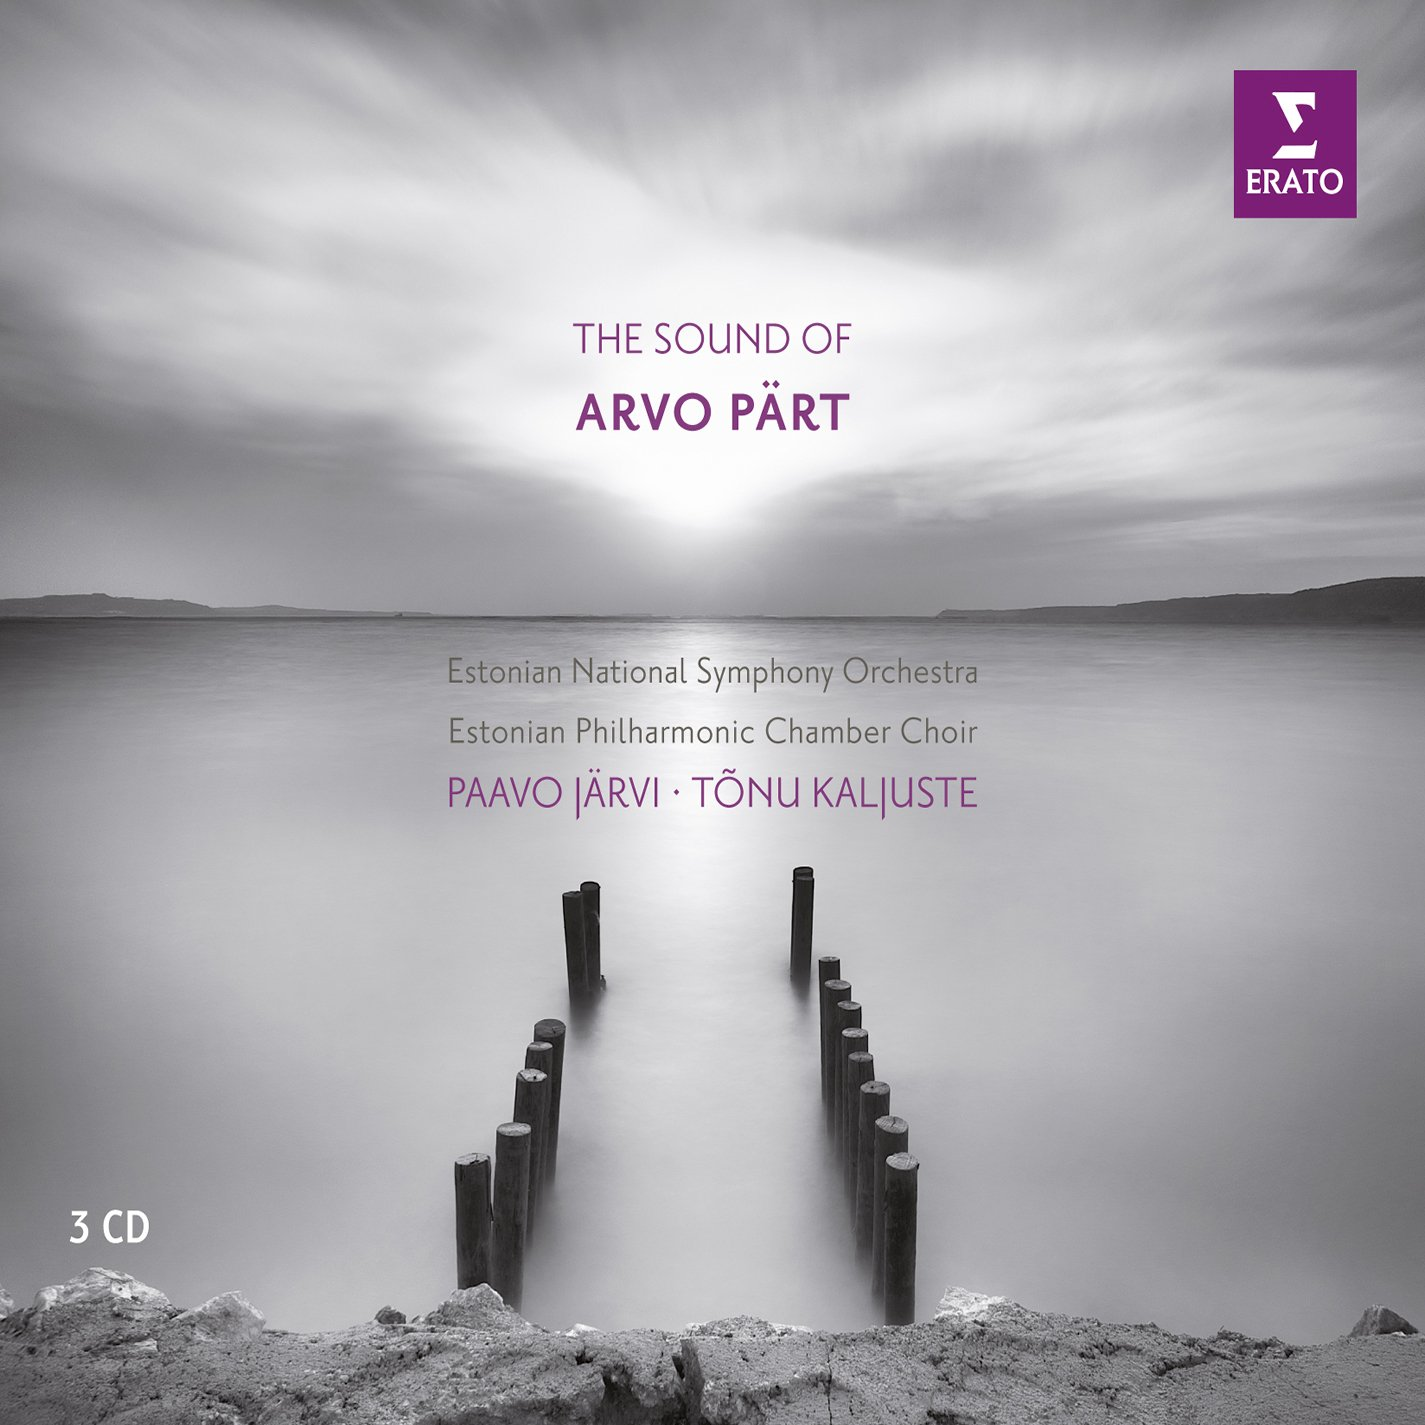 The Sound of Arvo Part (3CD)